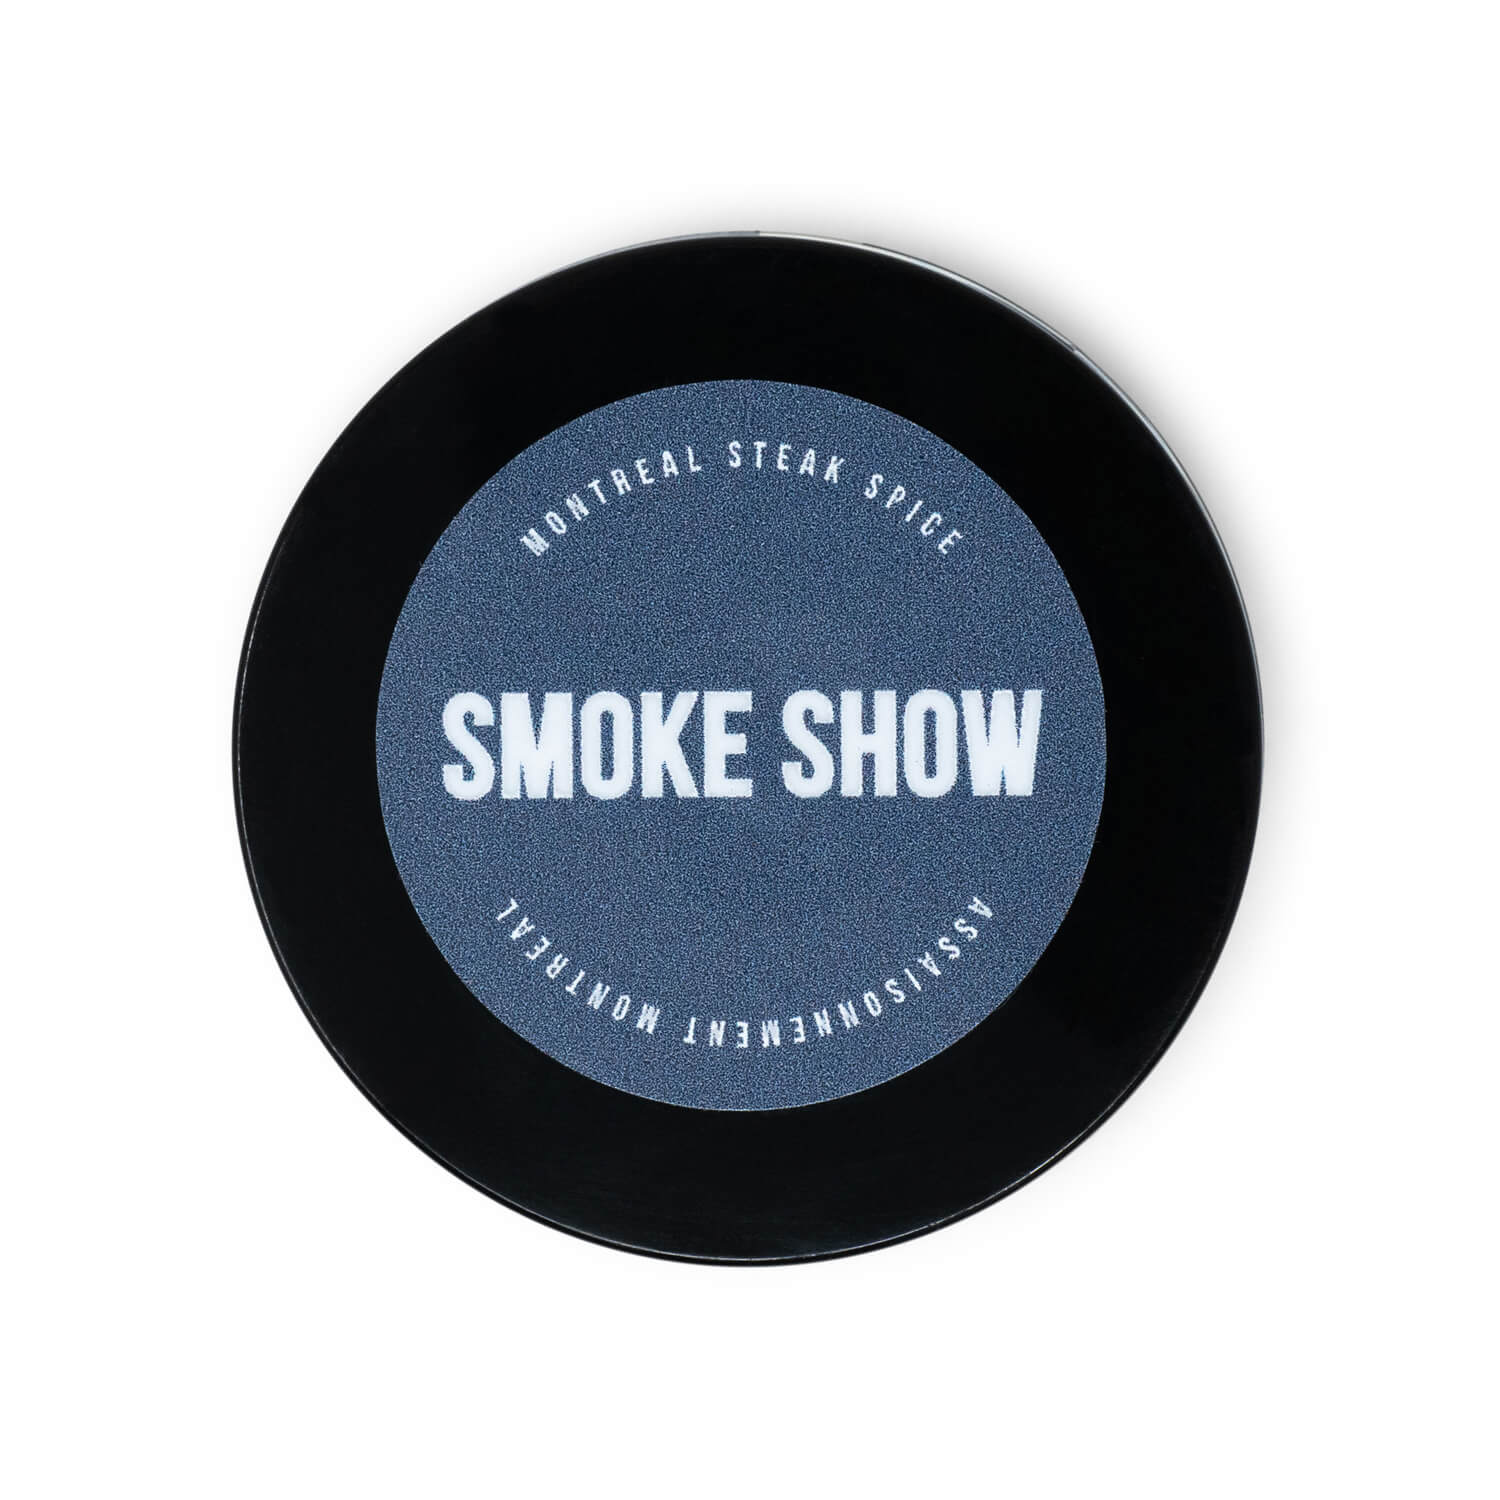 Image for Smoke Show Montreal Steak Spice